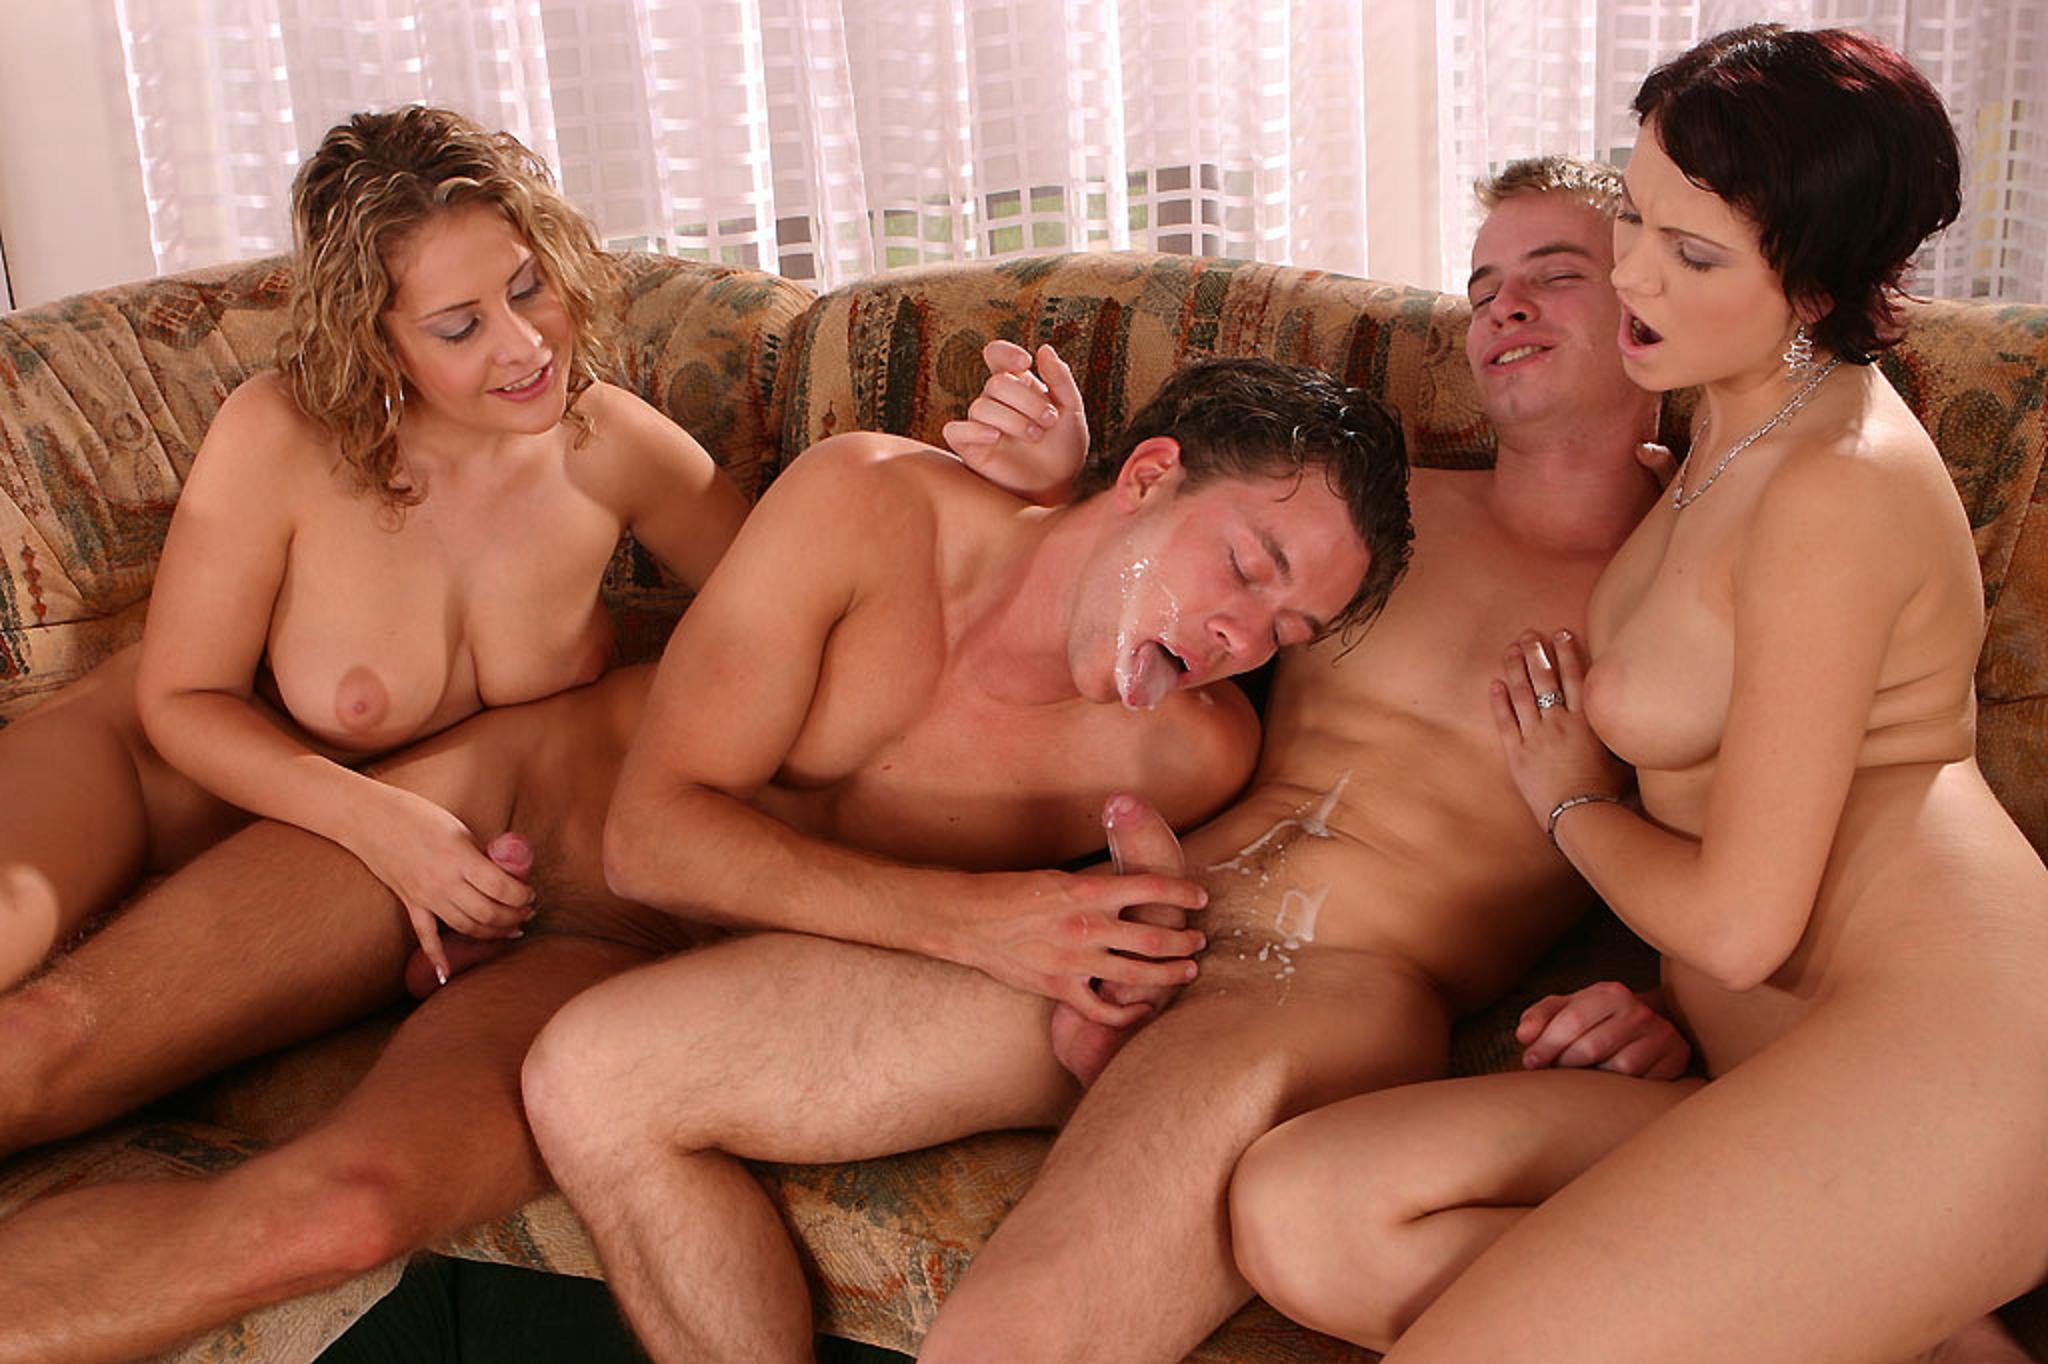 Milf bisexual porn, gangbang creampie streaming movies